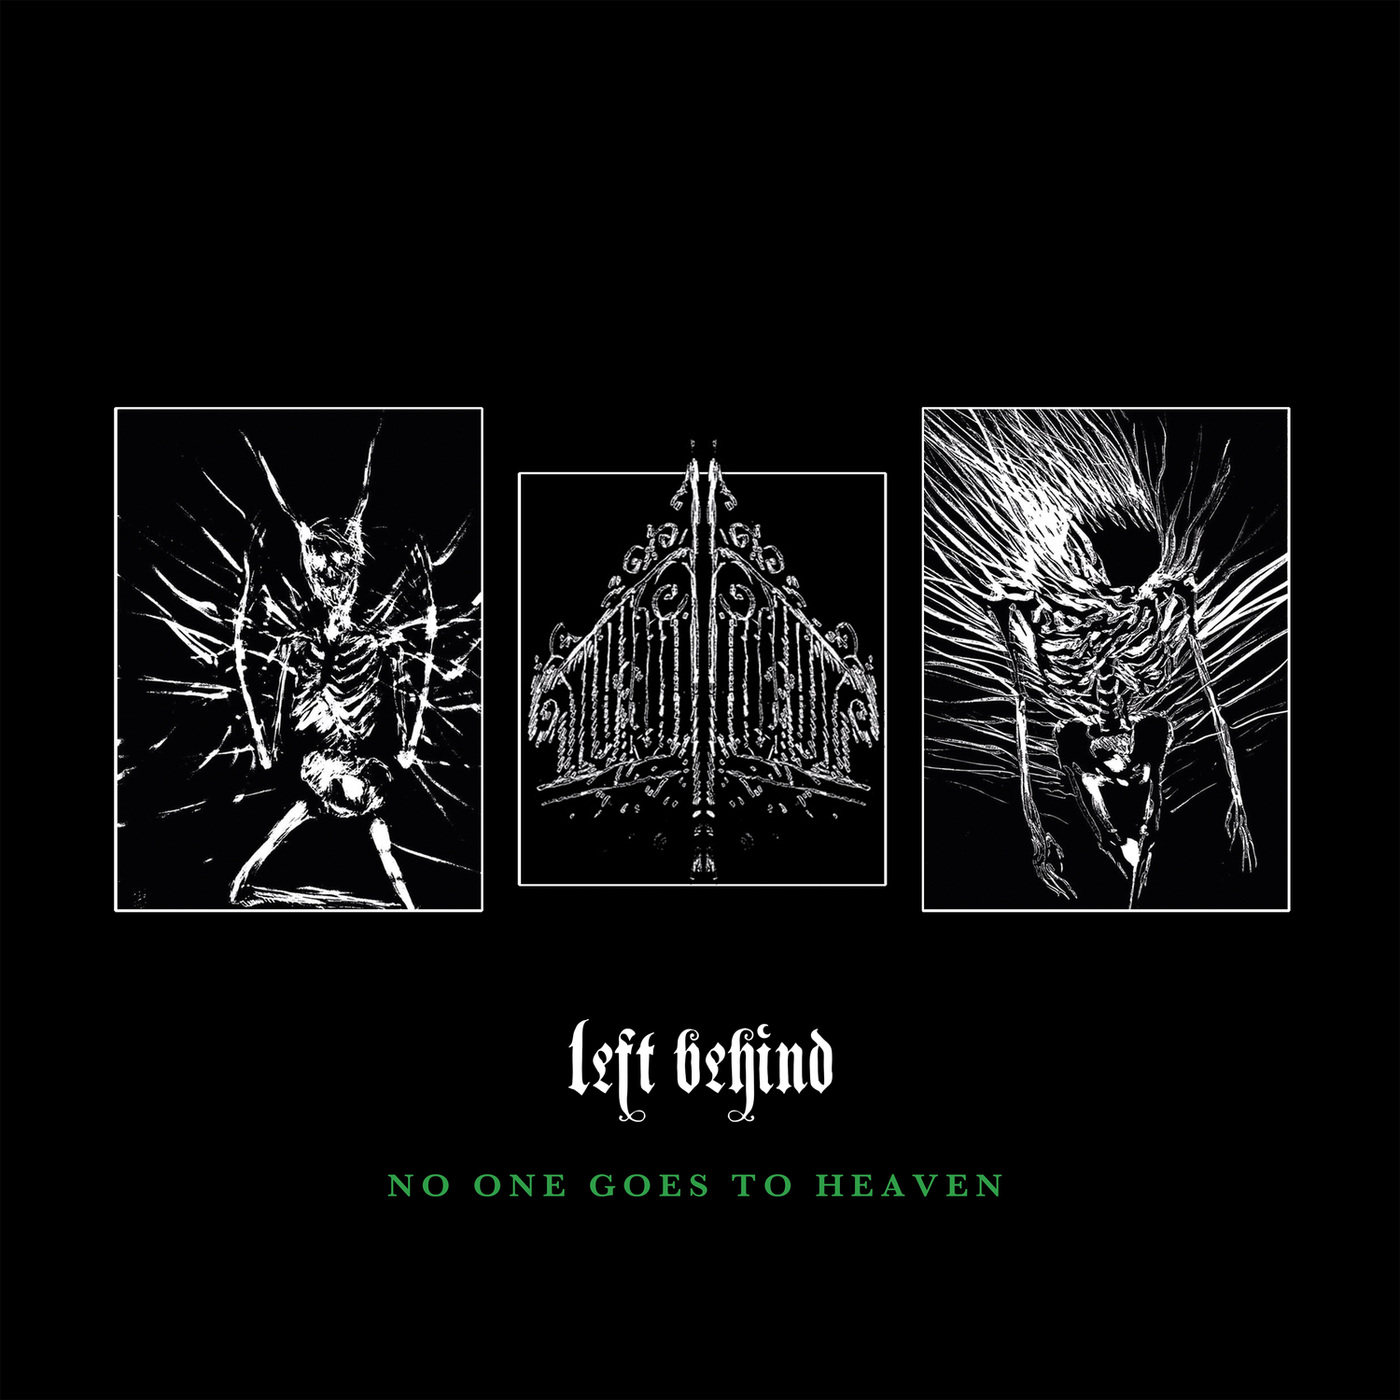 Left Behind - No One Goes to Heaven